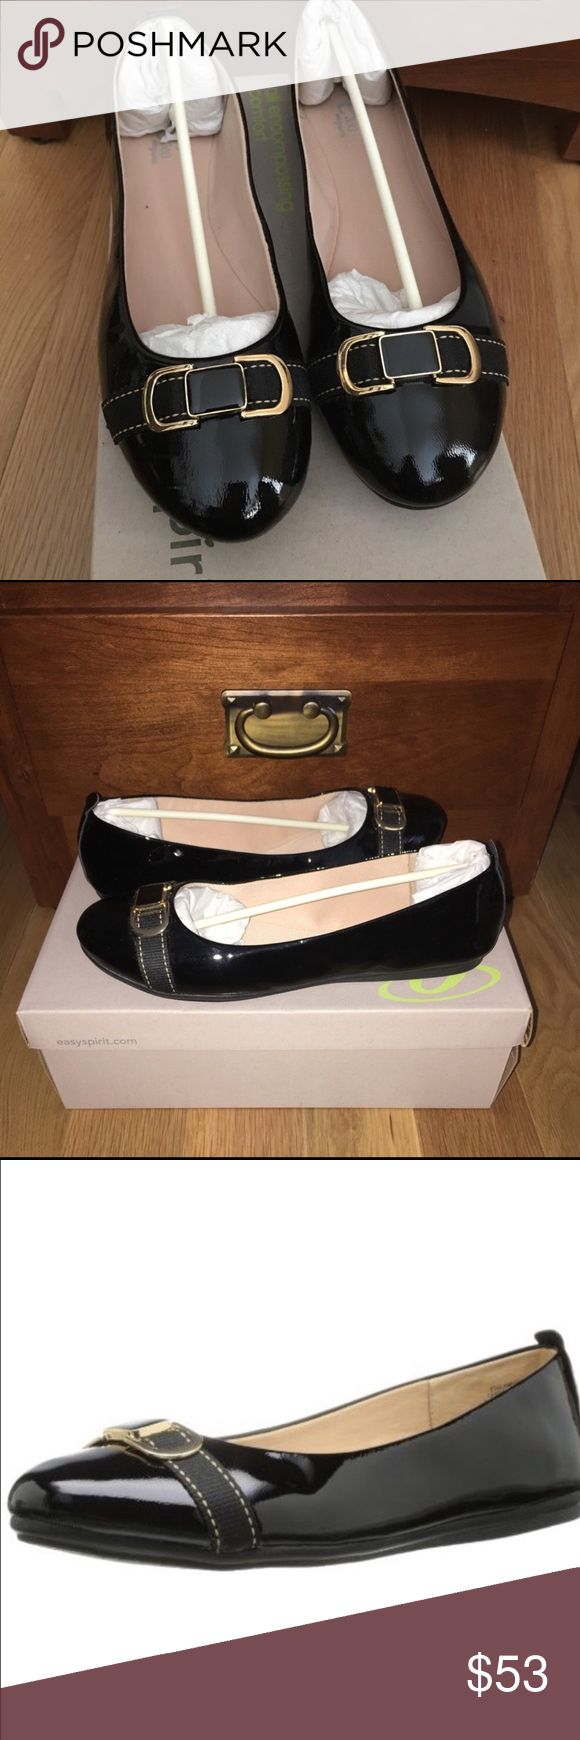 Gorgeous Shiny Flats Beautiful flats by Easy Spirit, a brand known for comfort and style. Perfect for any occasion dressed up or down & surely would look cute with your favorite pair of jeans. Brand New in box. Easy Spirit Shoes Flats & Loafers